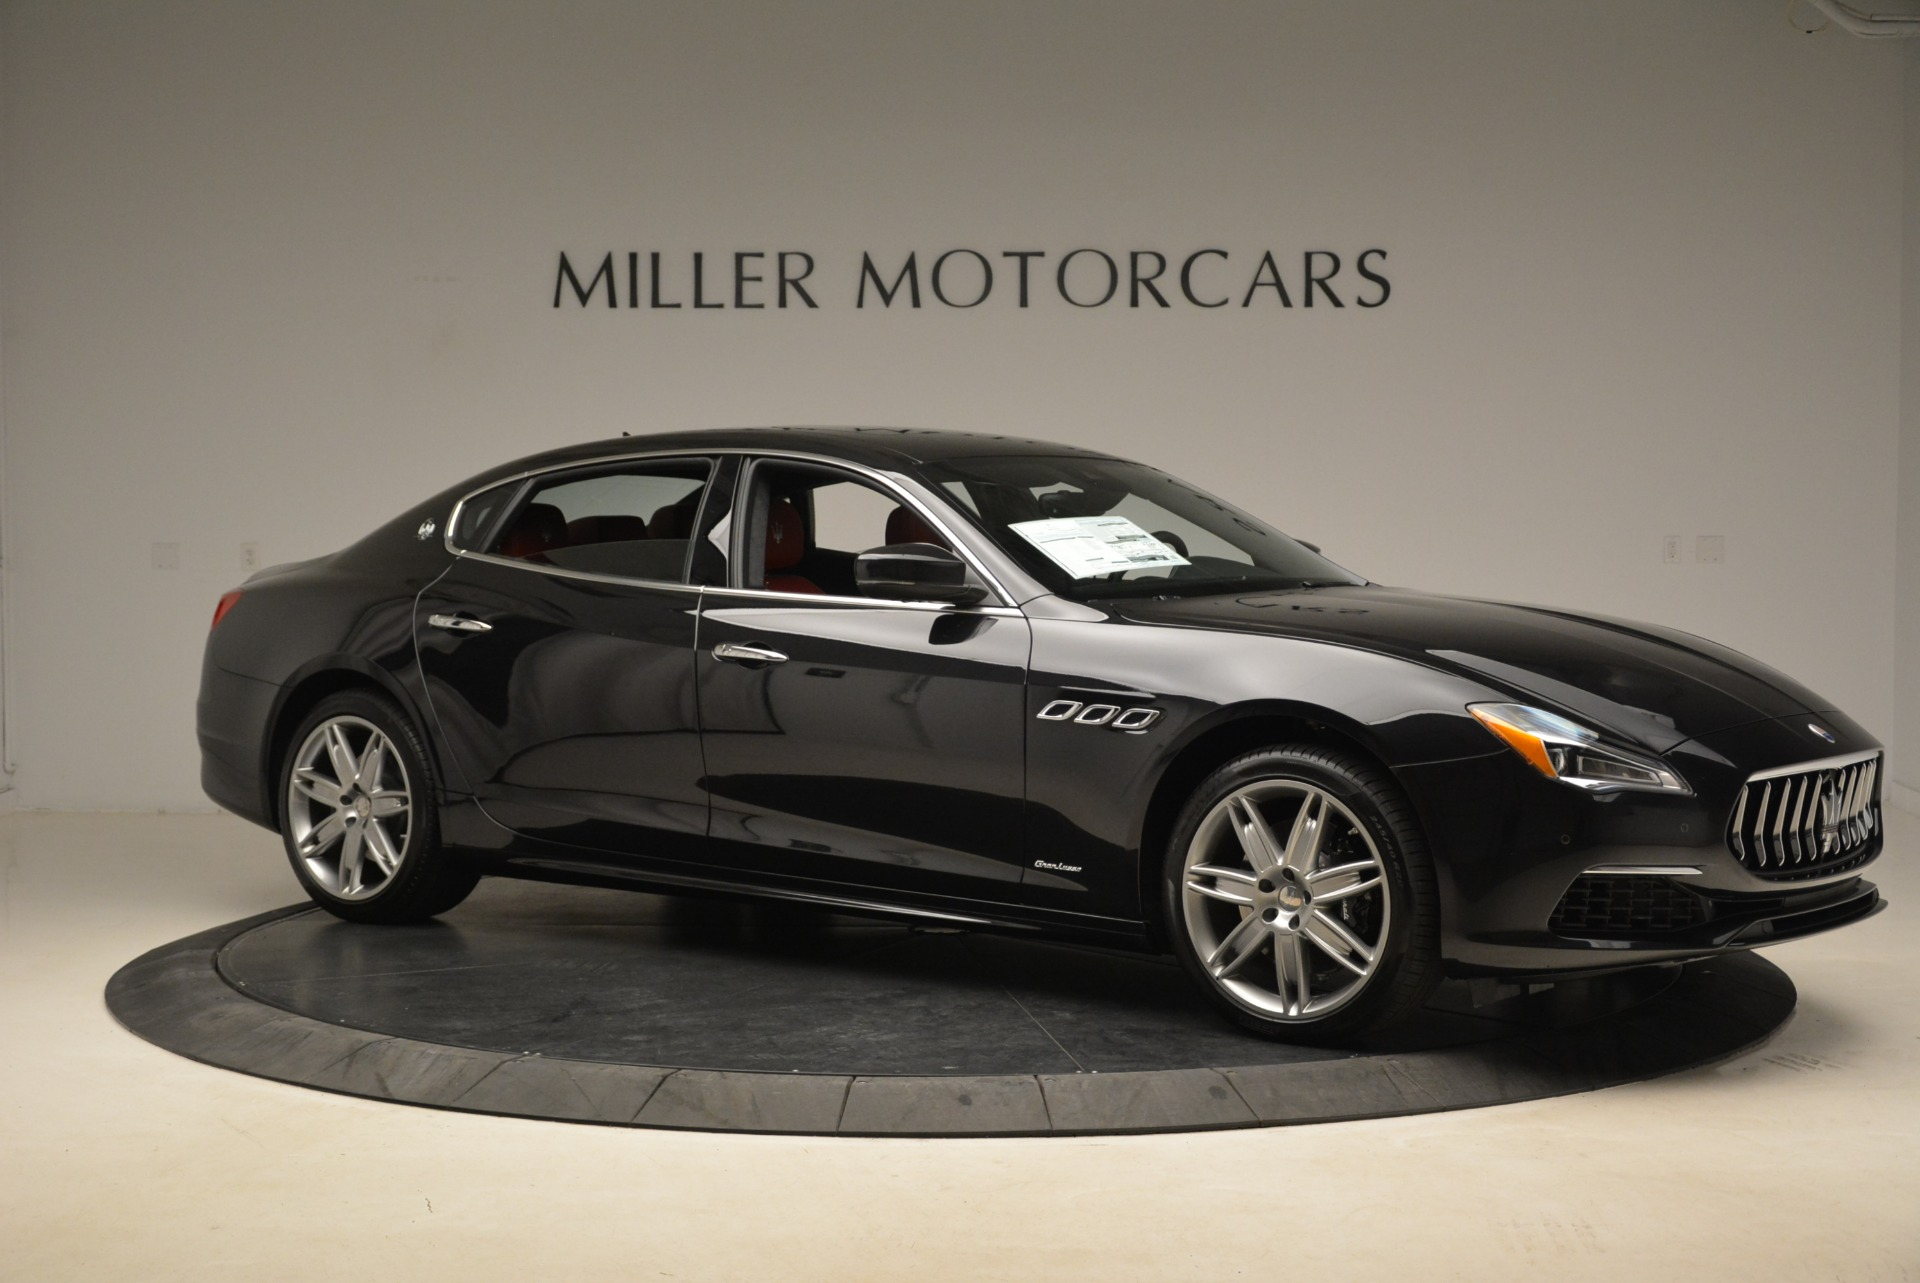 New 2018 Maserati Quattroporte S Q4 GranLusso For Sale In Greenwich, CT. Alfa Romeo of Greenwich, M2175 2390_p10